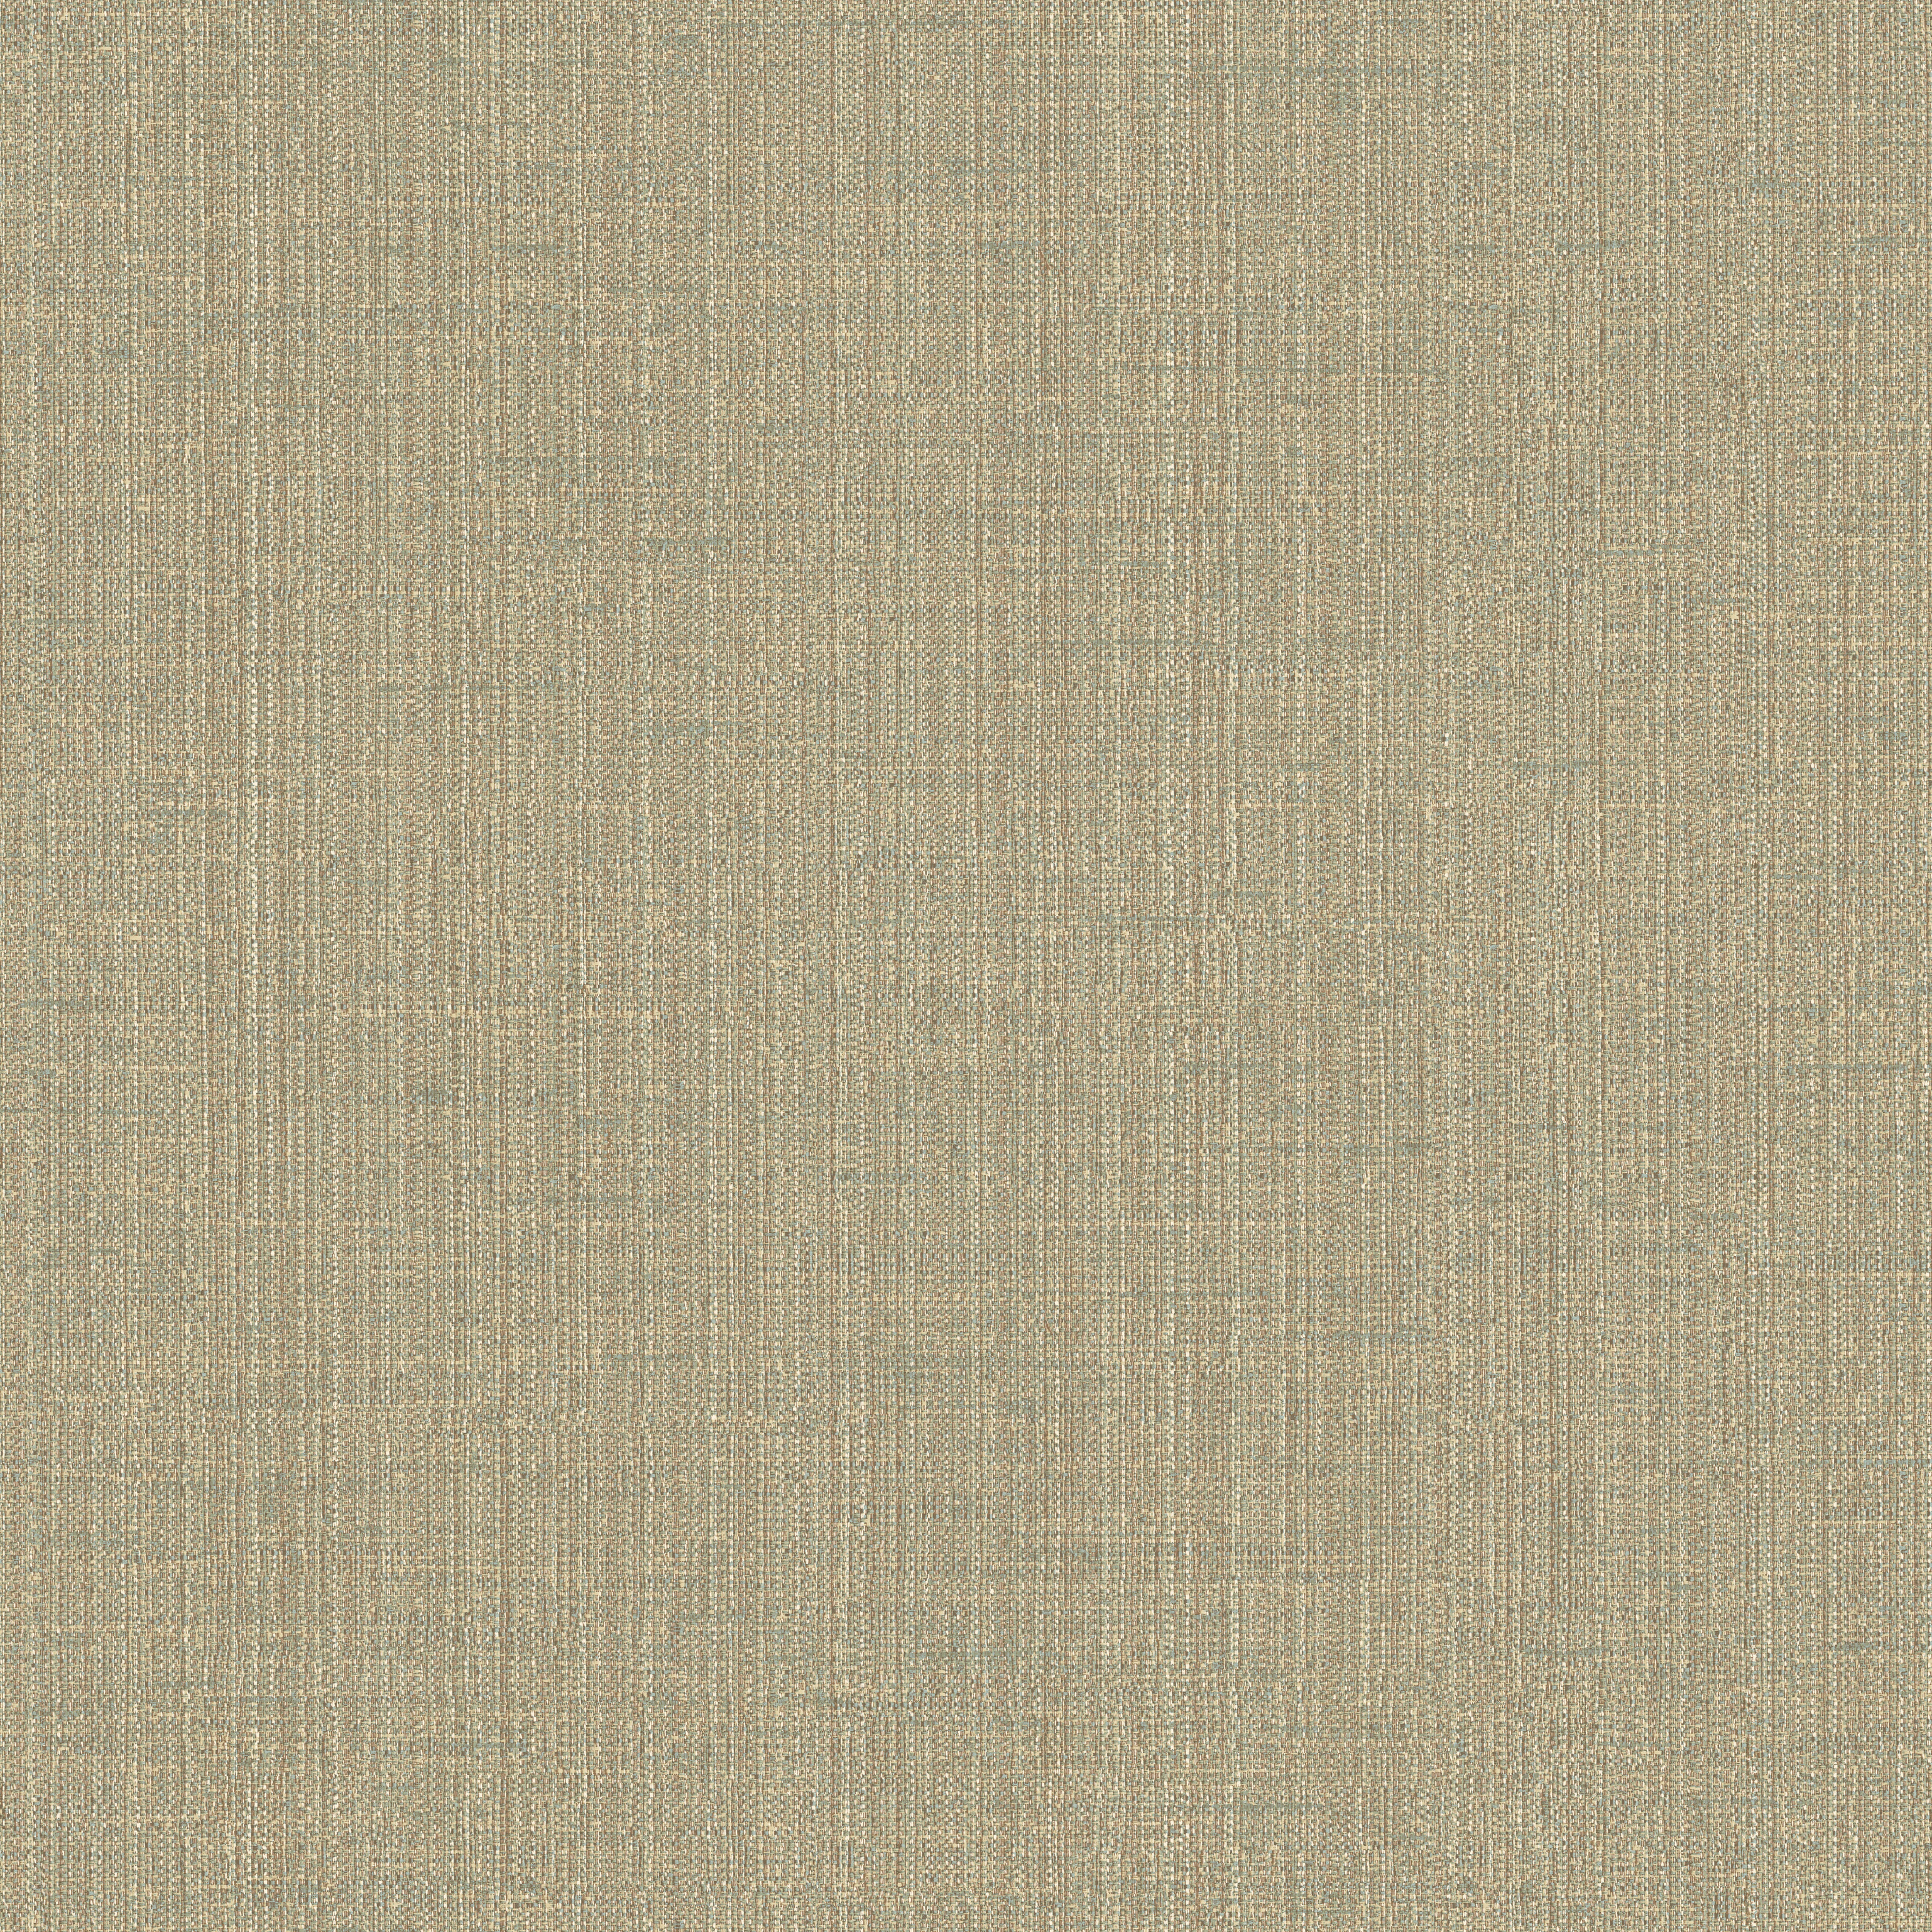 Picture of Berge Green Natural Linen Faux Effect Wallpaper Wallpaper